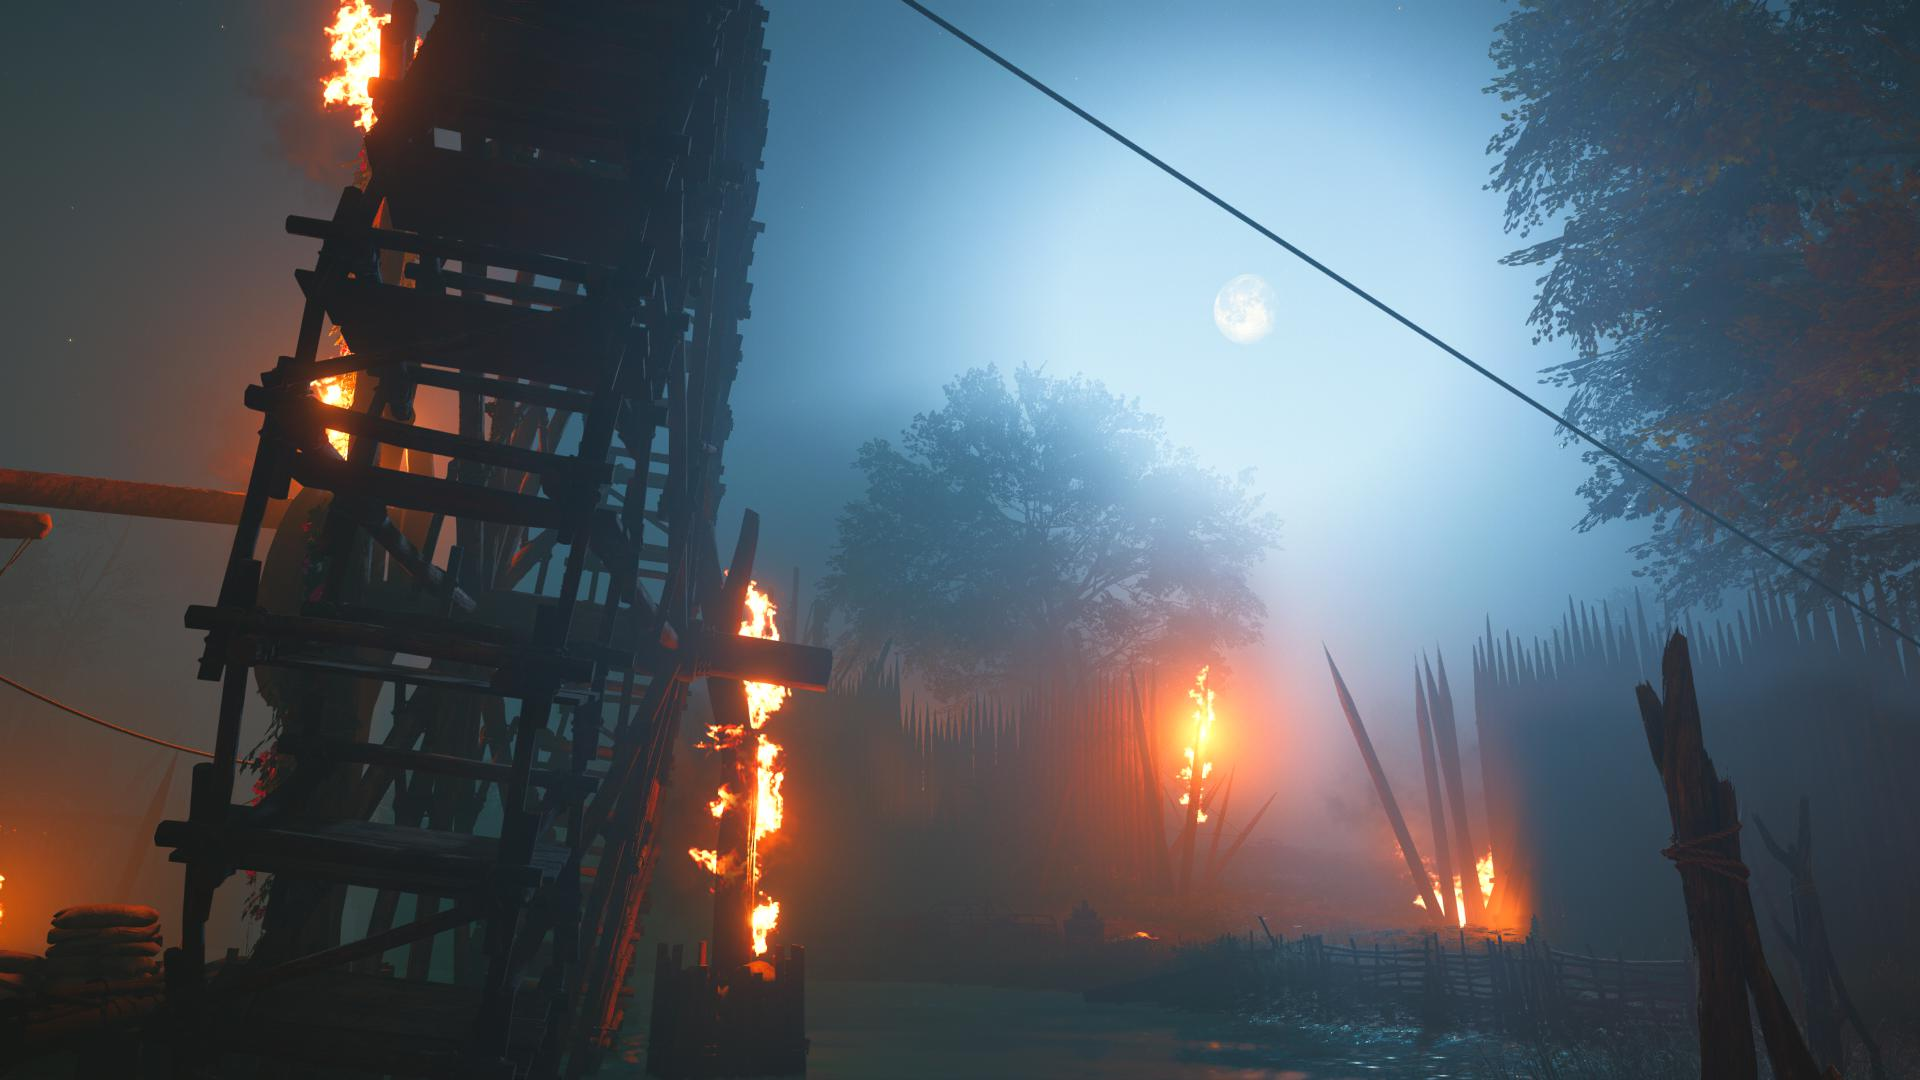 A wooden water wheel, in the fog, on fire.